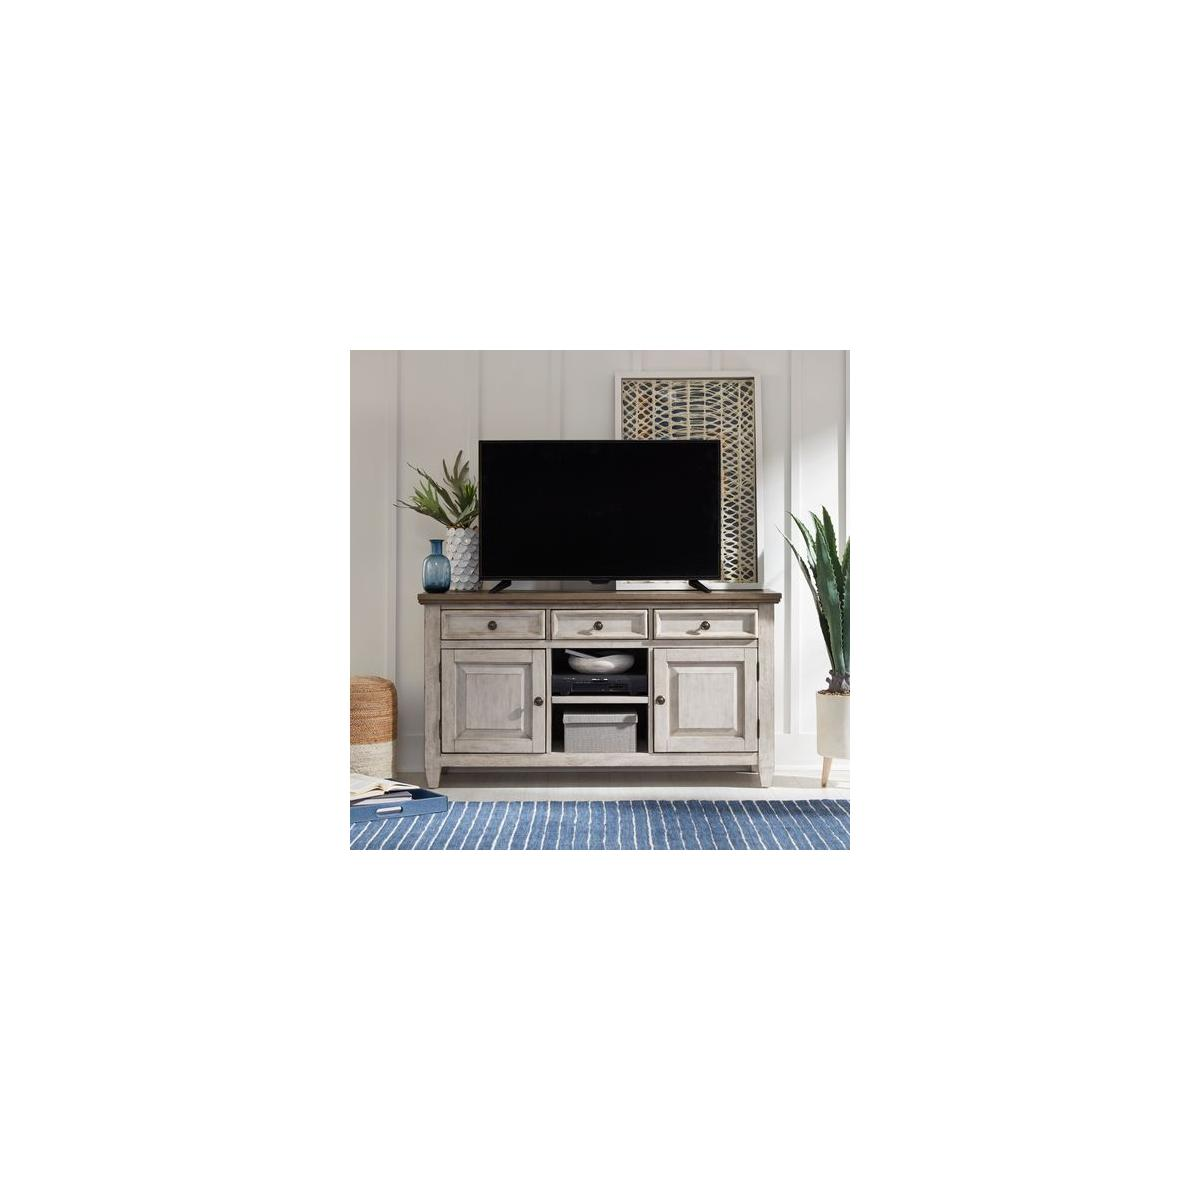 56 Inch Tile TV Console